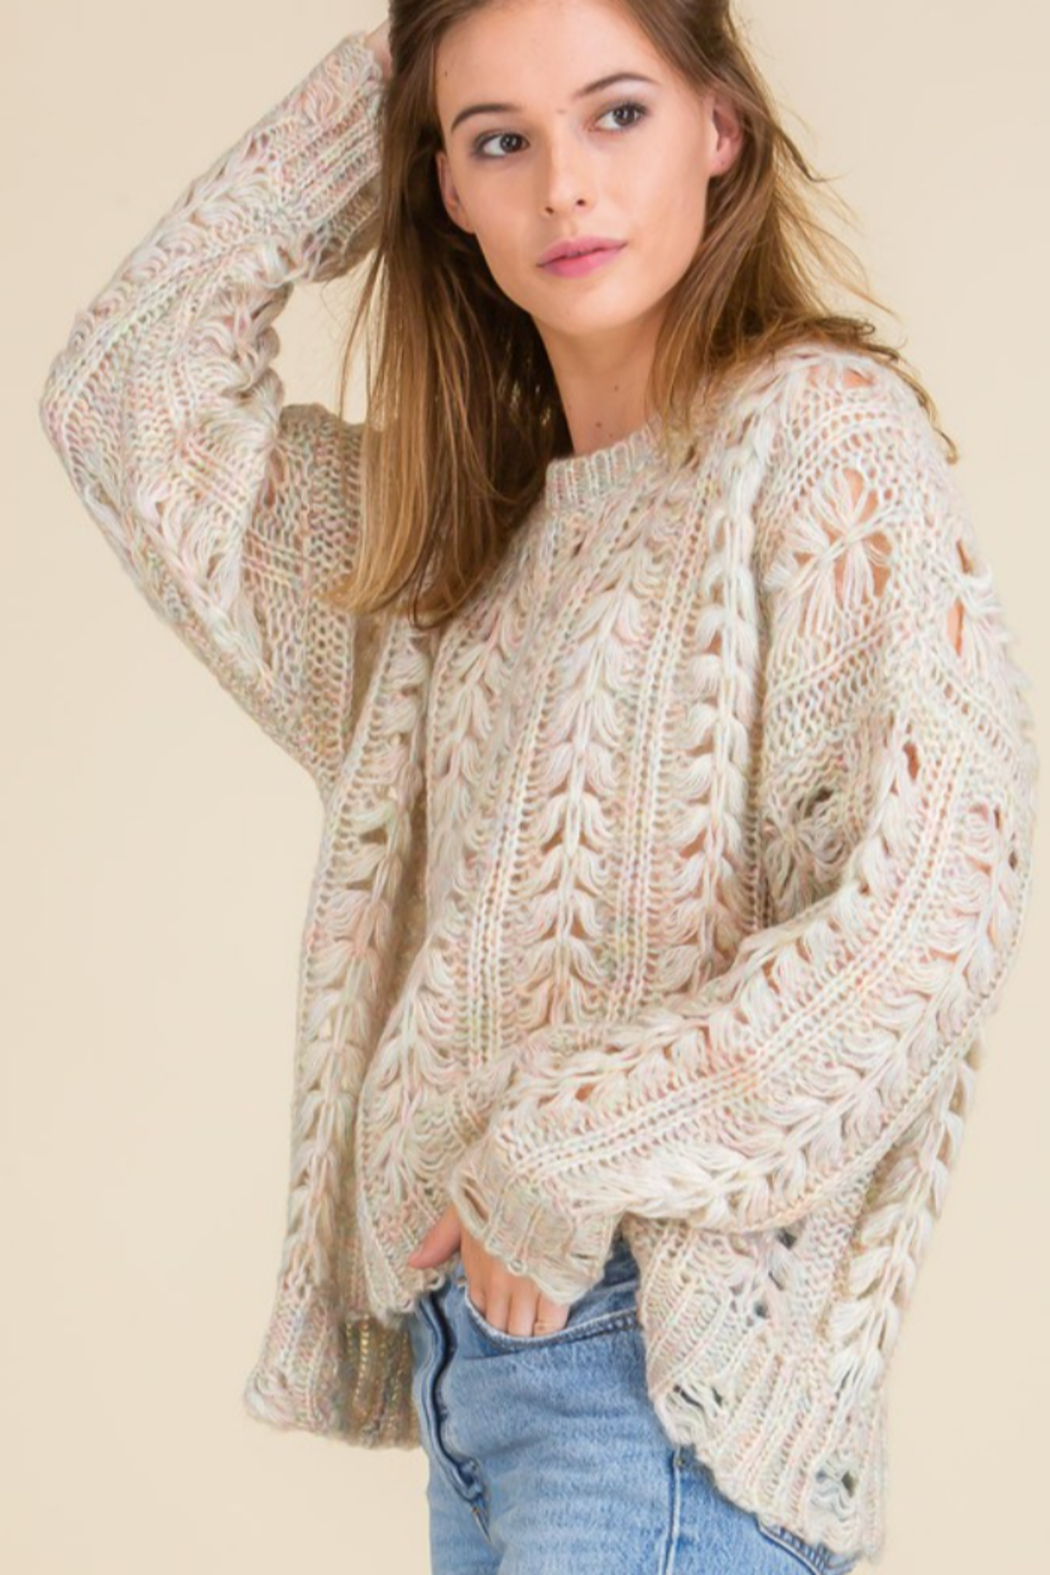 Mojito Mango Cream/Multi-color Cozy Holes Sweater - Main Image